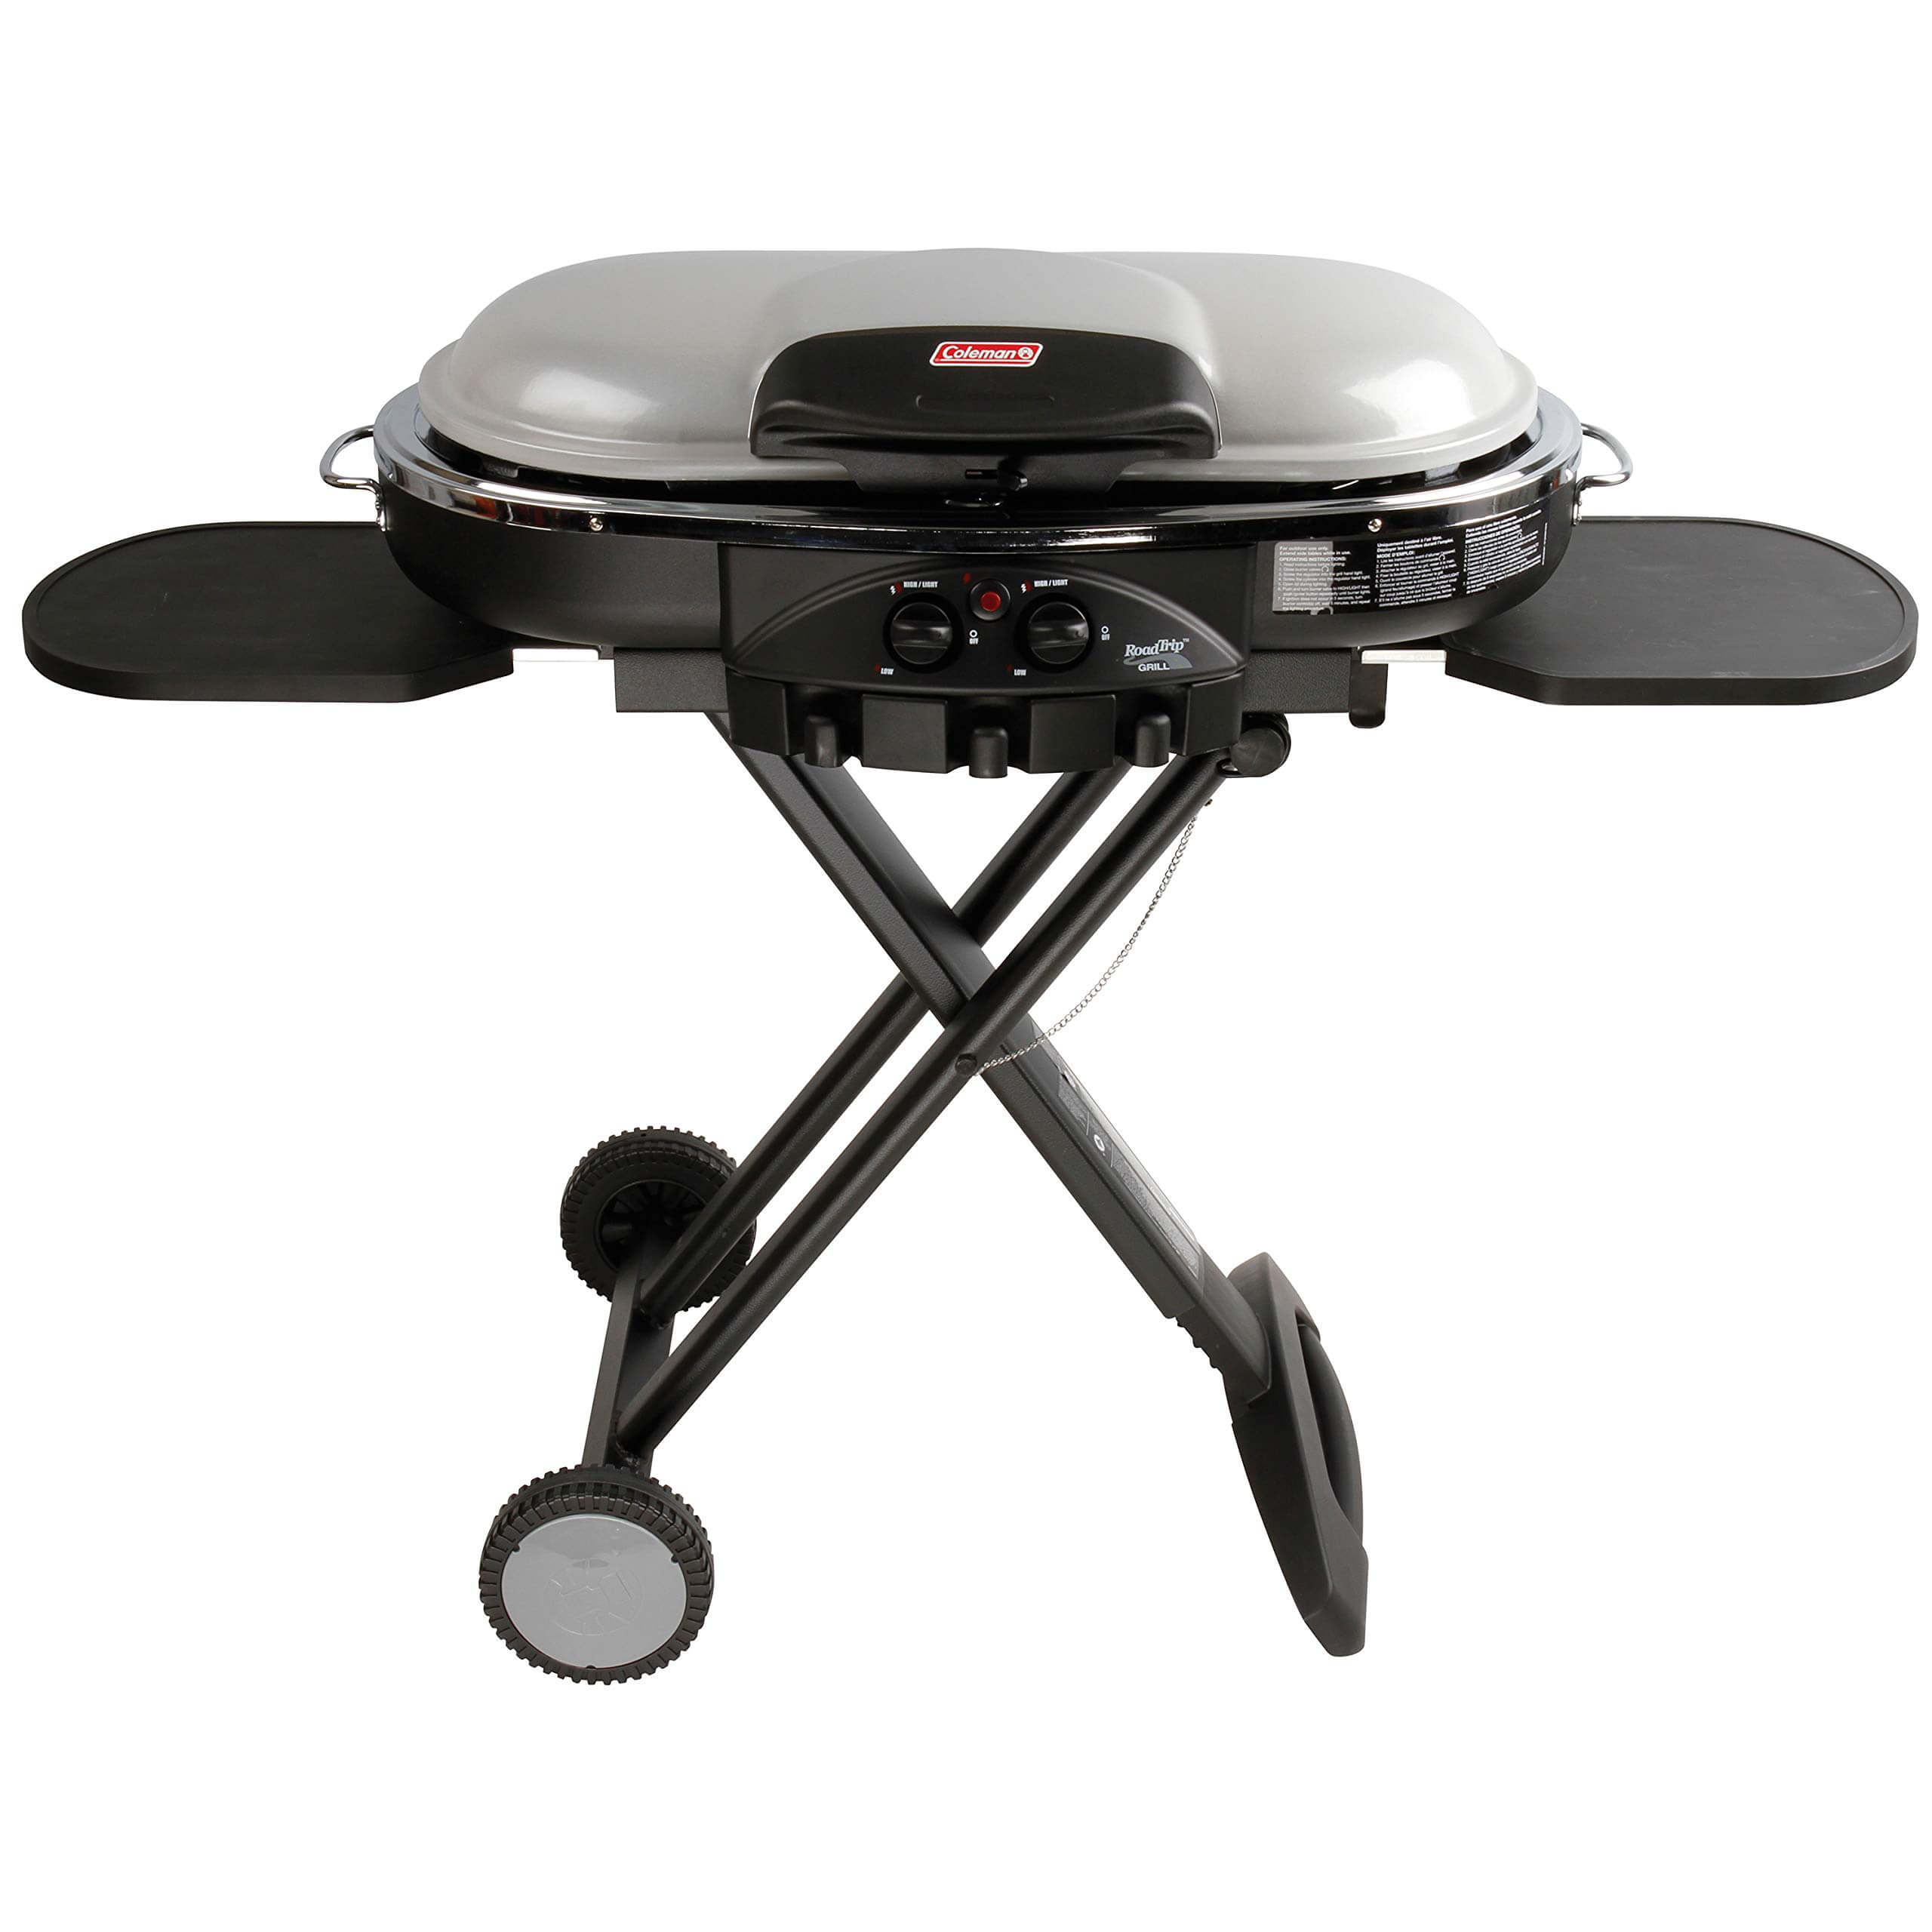 best gas grill under $200, Coleman Road Trip LXE Portable Gas Grill, best charcoal grills under $300, best 4 burner gas grill, Best Gas Grill under $300 for Delicious and Easy Home Grilling